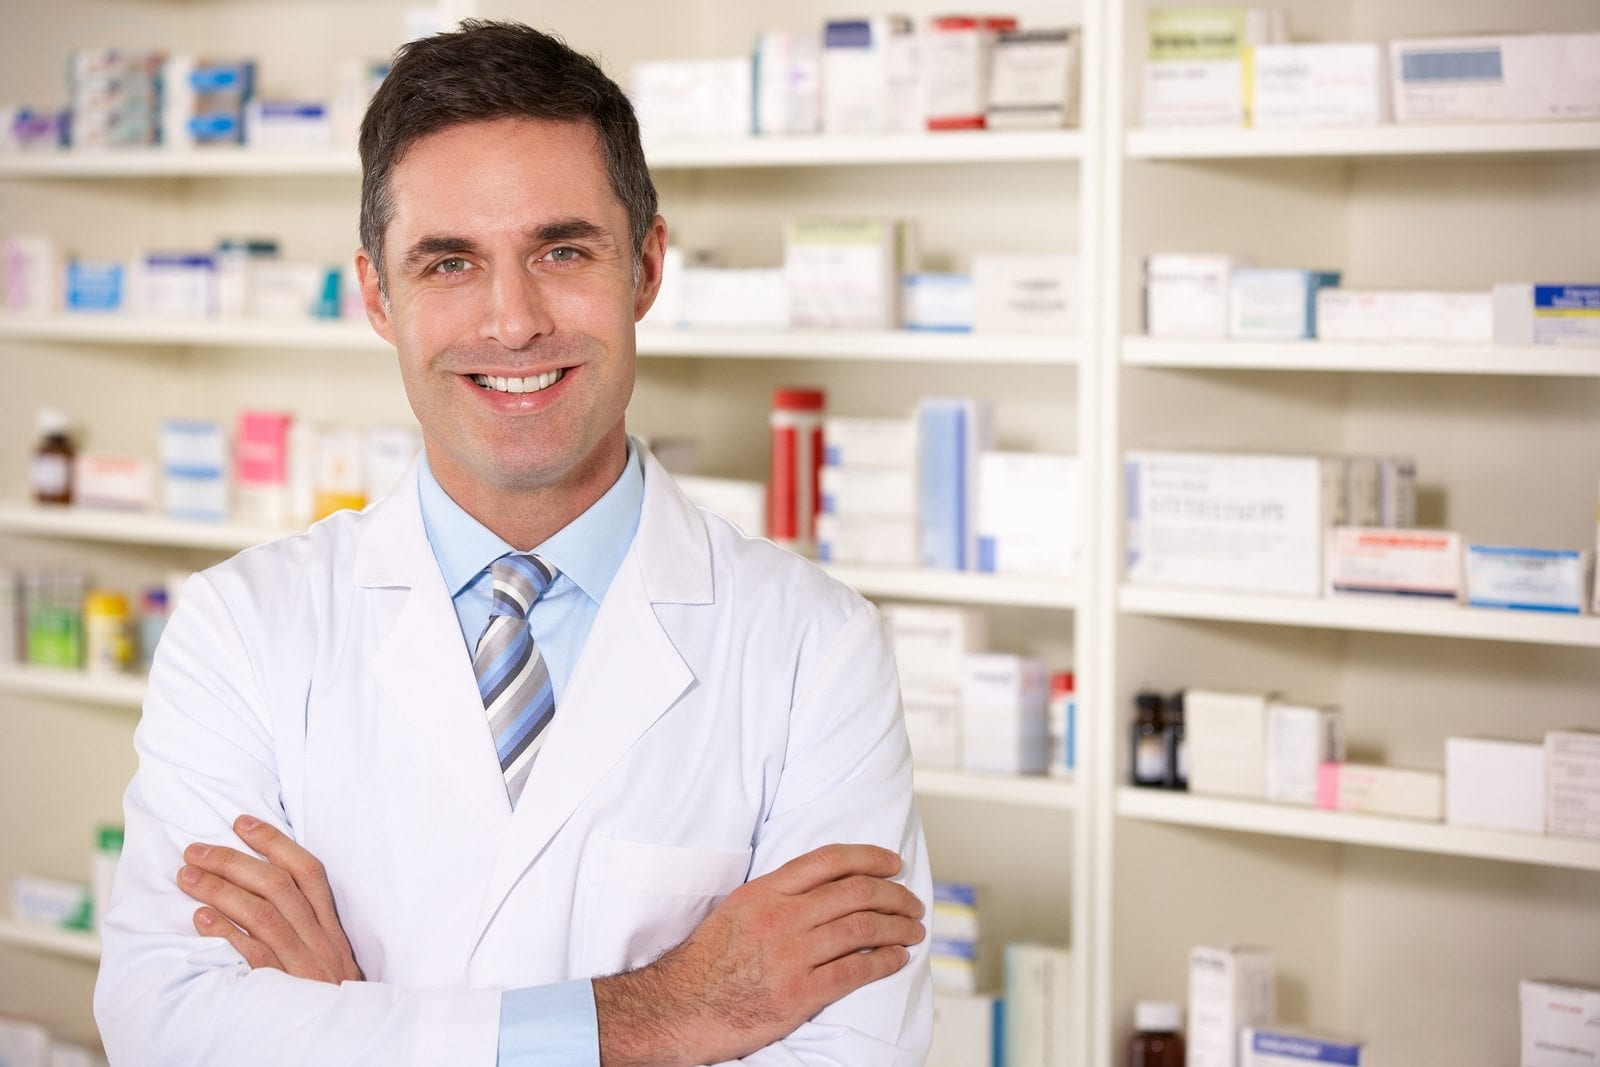 How to get cialis without doctor